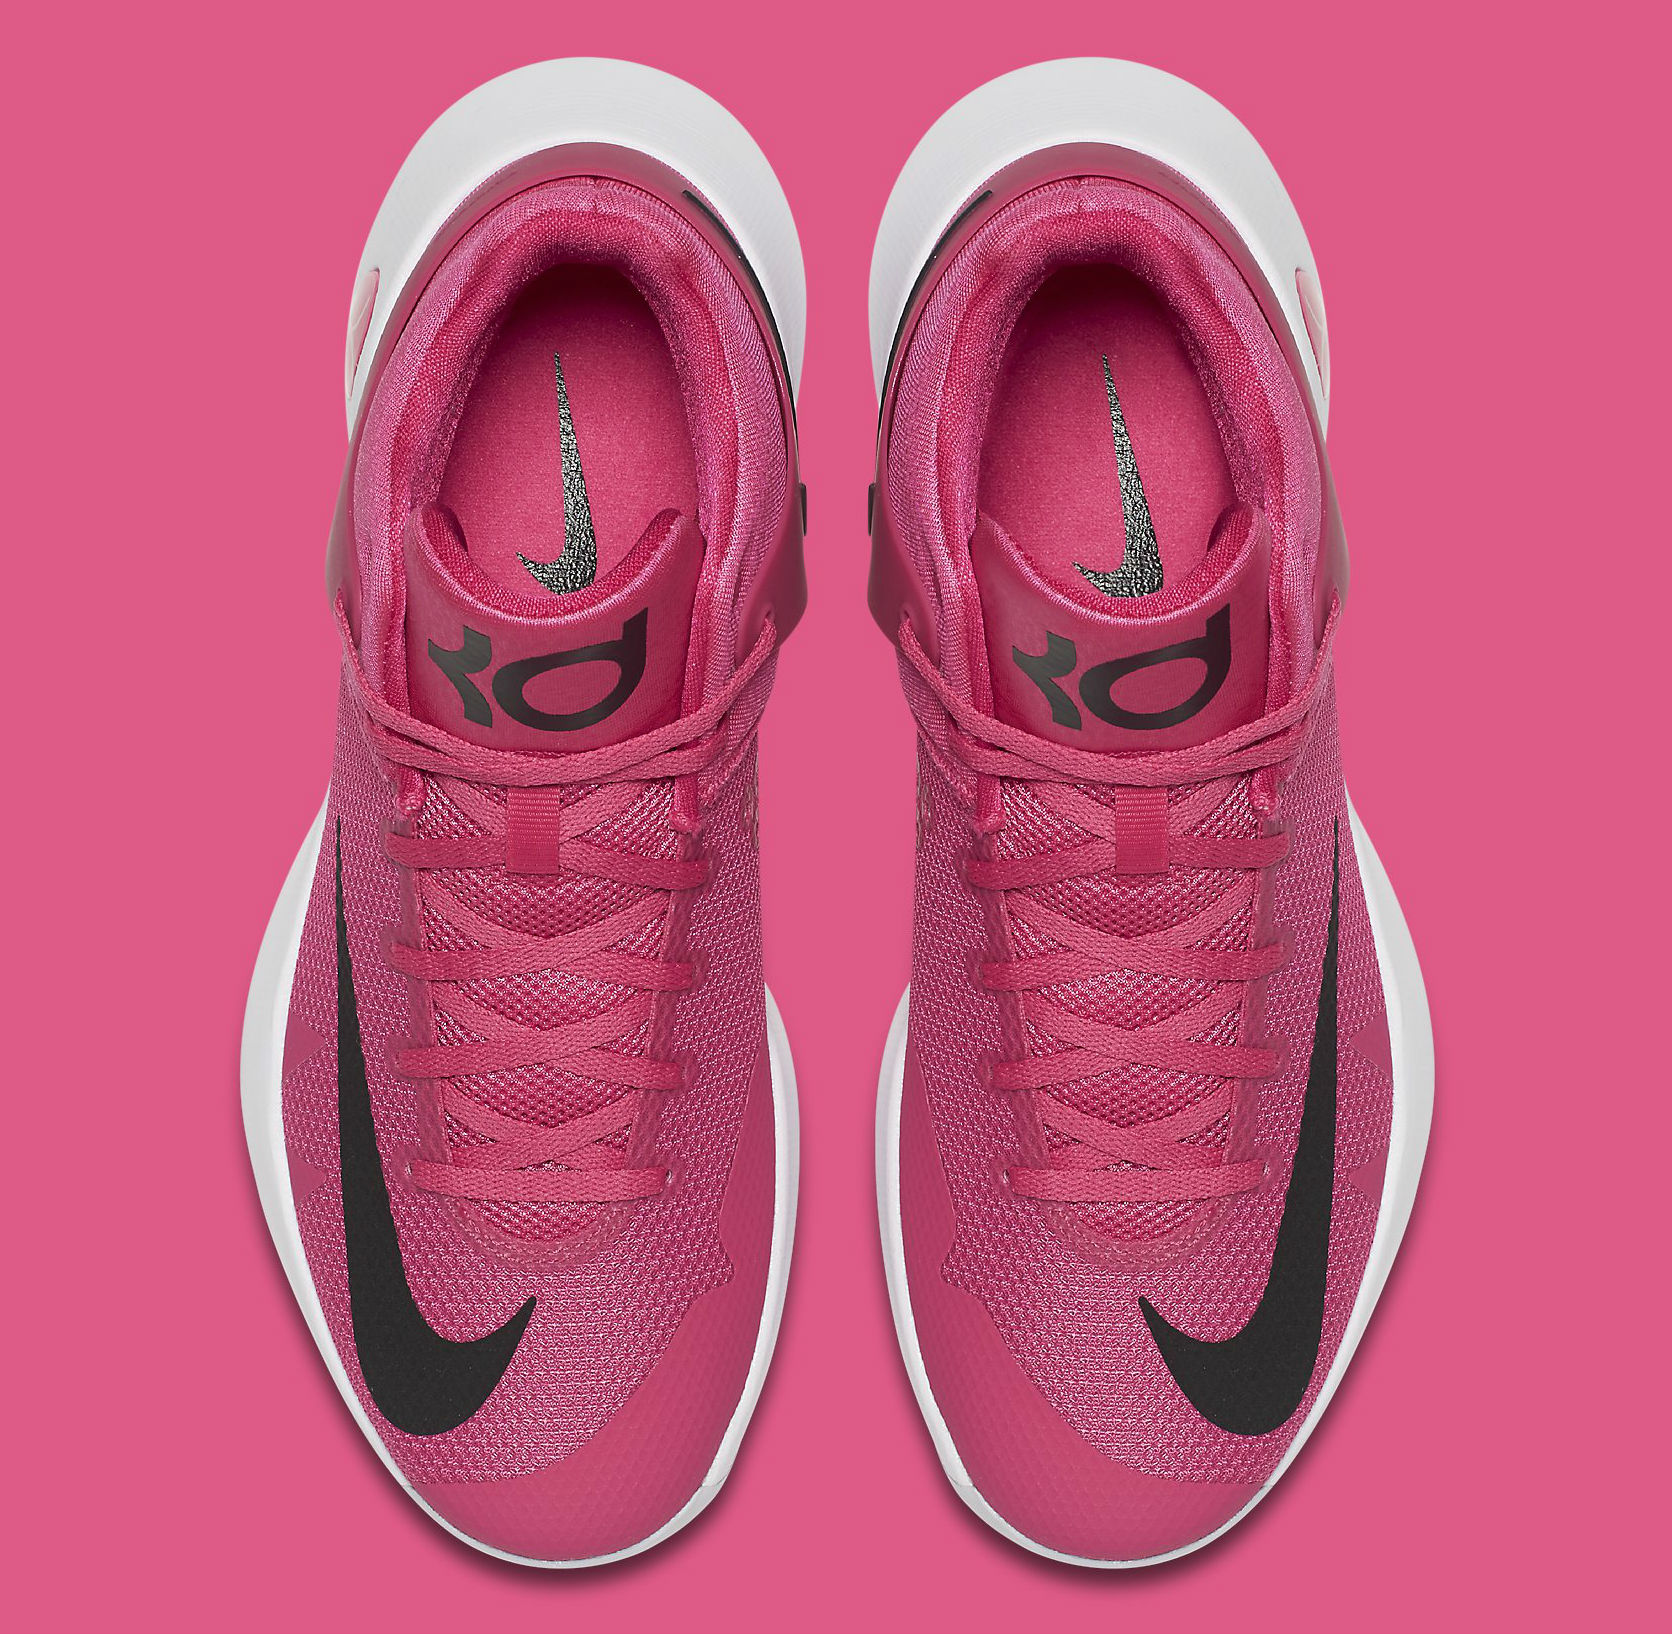 1f18ba82fe0d Nike KD Trey 5 IV Think Pink Breast Cancer Kay Yow Top 844573-606